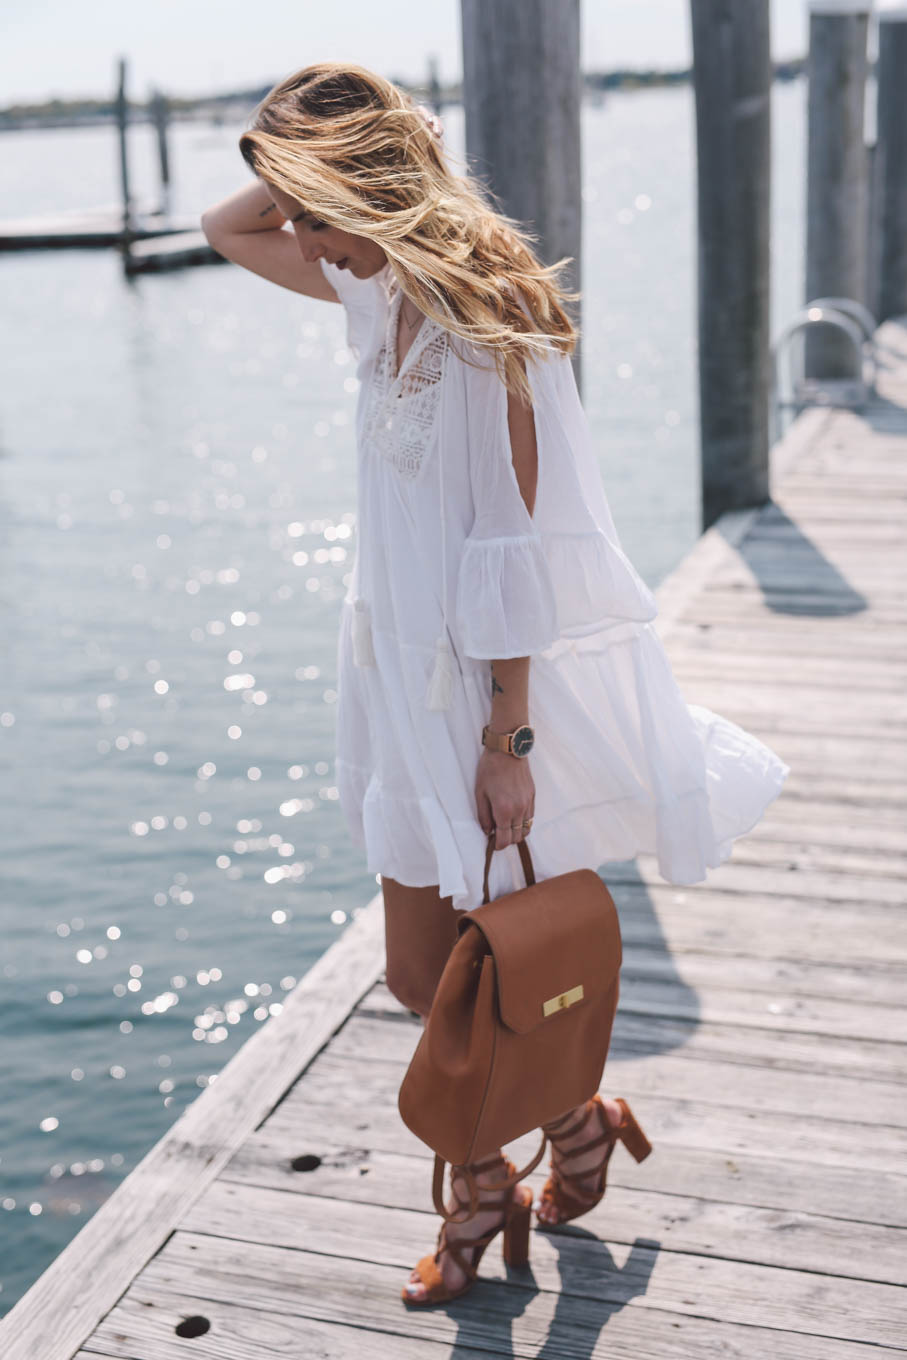 Brahmin-White-Cotton-Lace-Tunic-Dress-Prosecco-and-Plaid.jpg